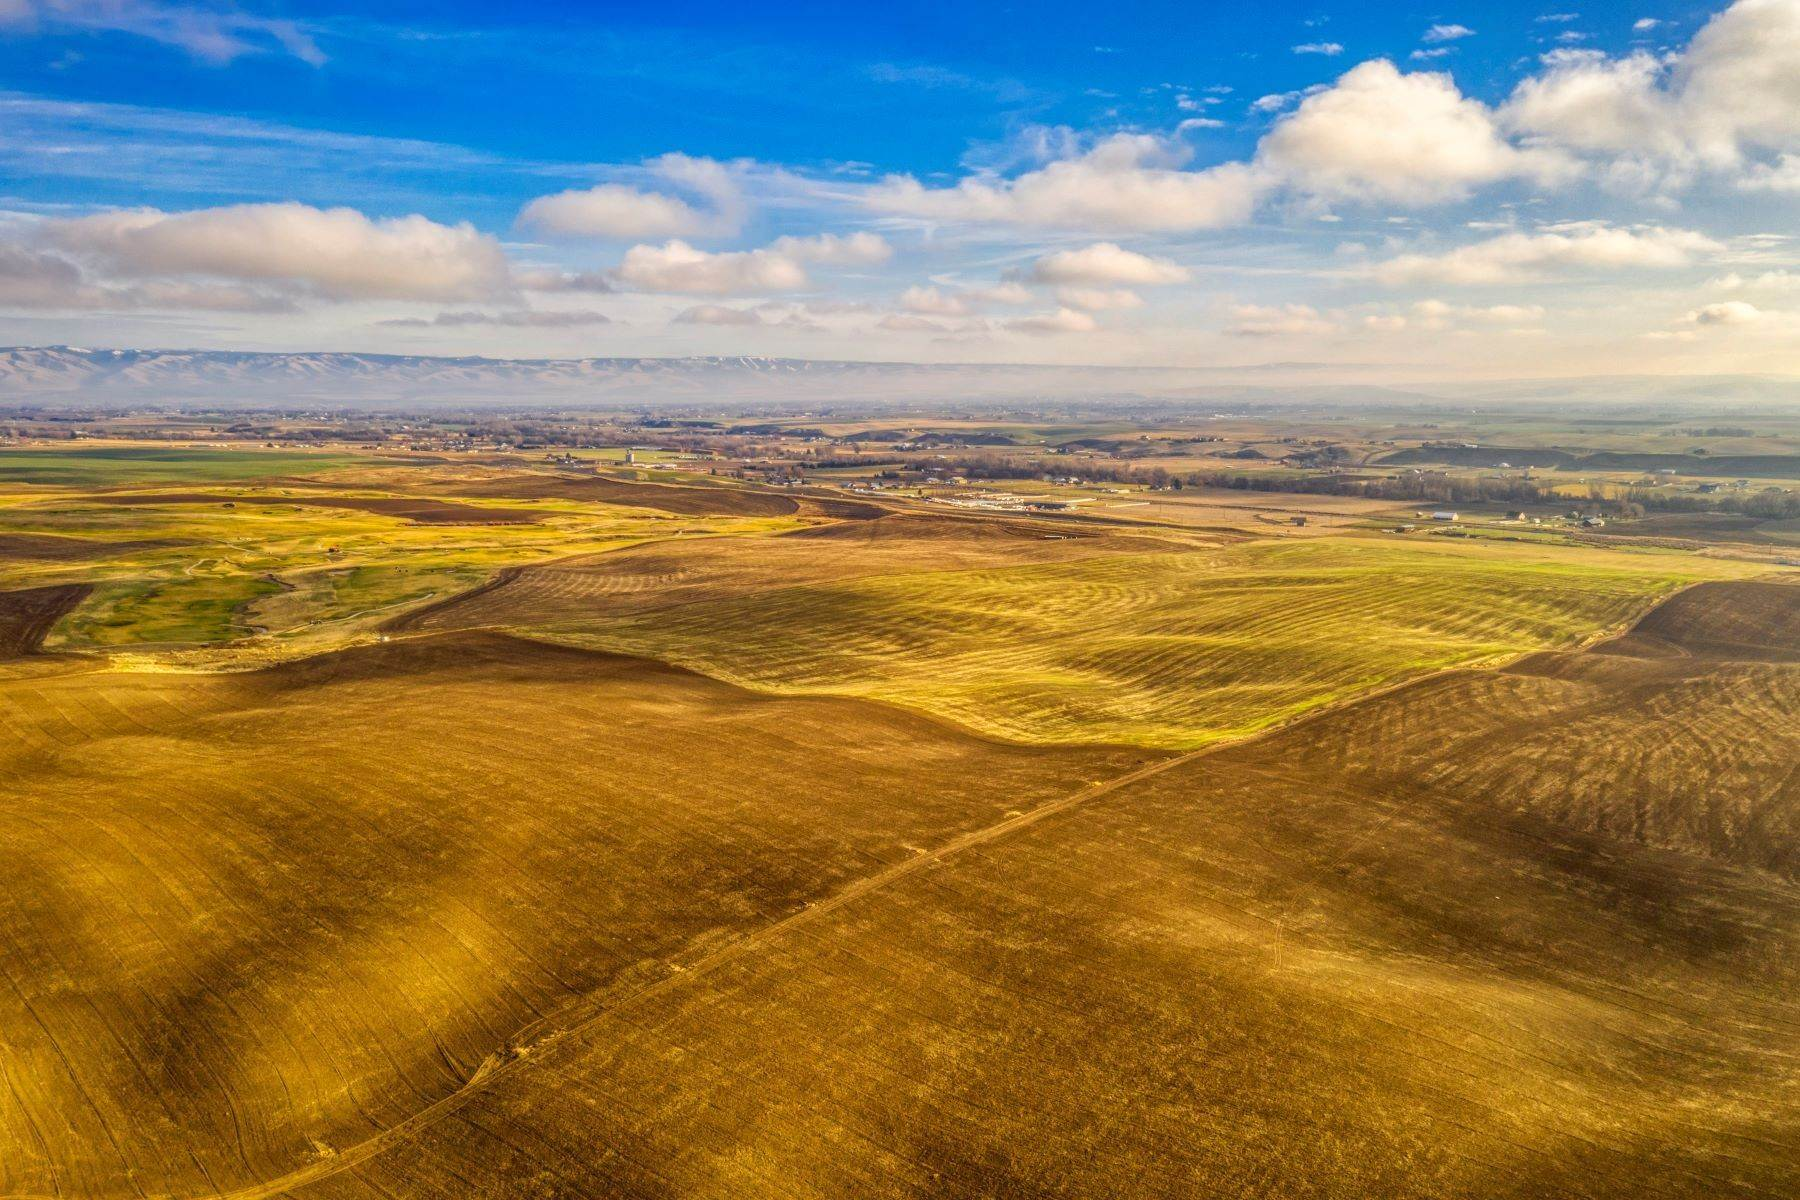 Land for Sale at Mountain View Land Highway 12 Walla Walla, Washington 99362